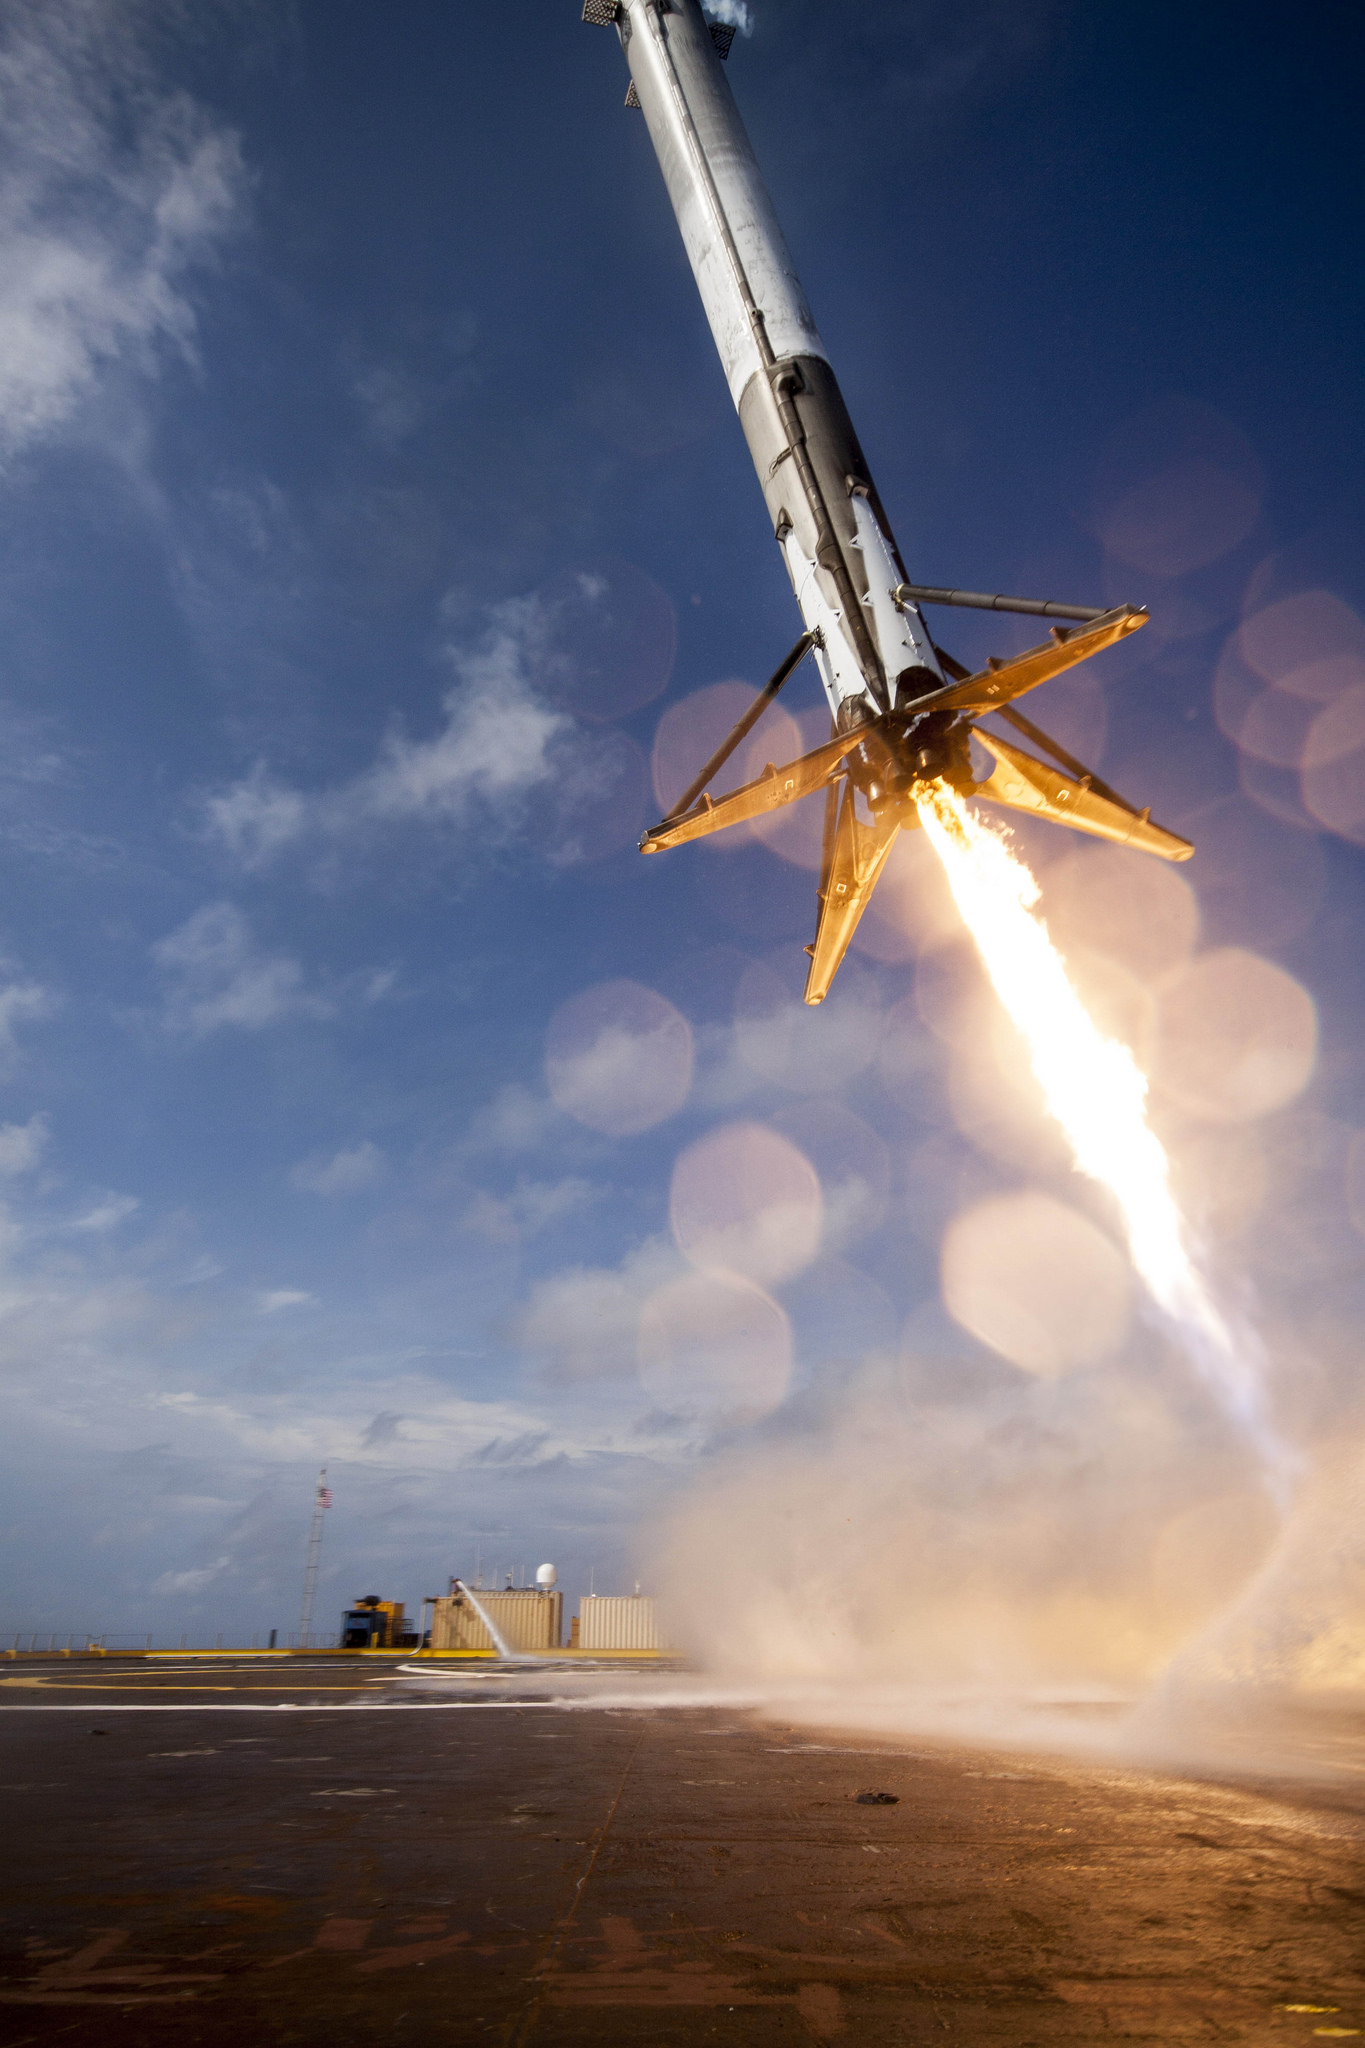 File photo of a Falcon 9 first stage descending to landing ship in the Atlantic Ocean after launching from Cape Canaveral on April 14, 2015. The rocket tipped over after touchdown and exploded in a fireball after a stuck throttle valve caused the rocket to lose control. Credit: SpaceX